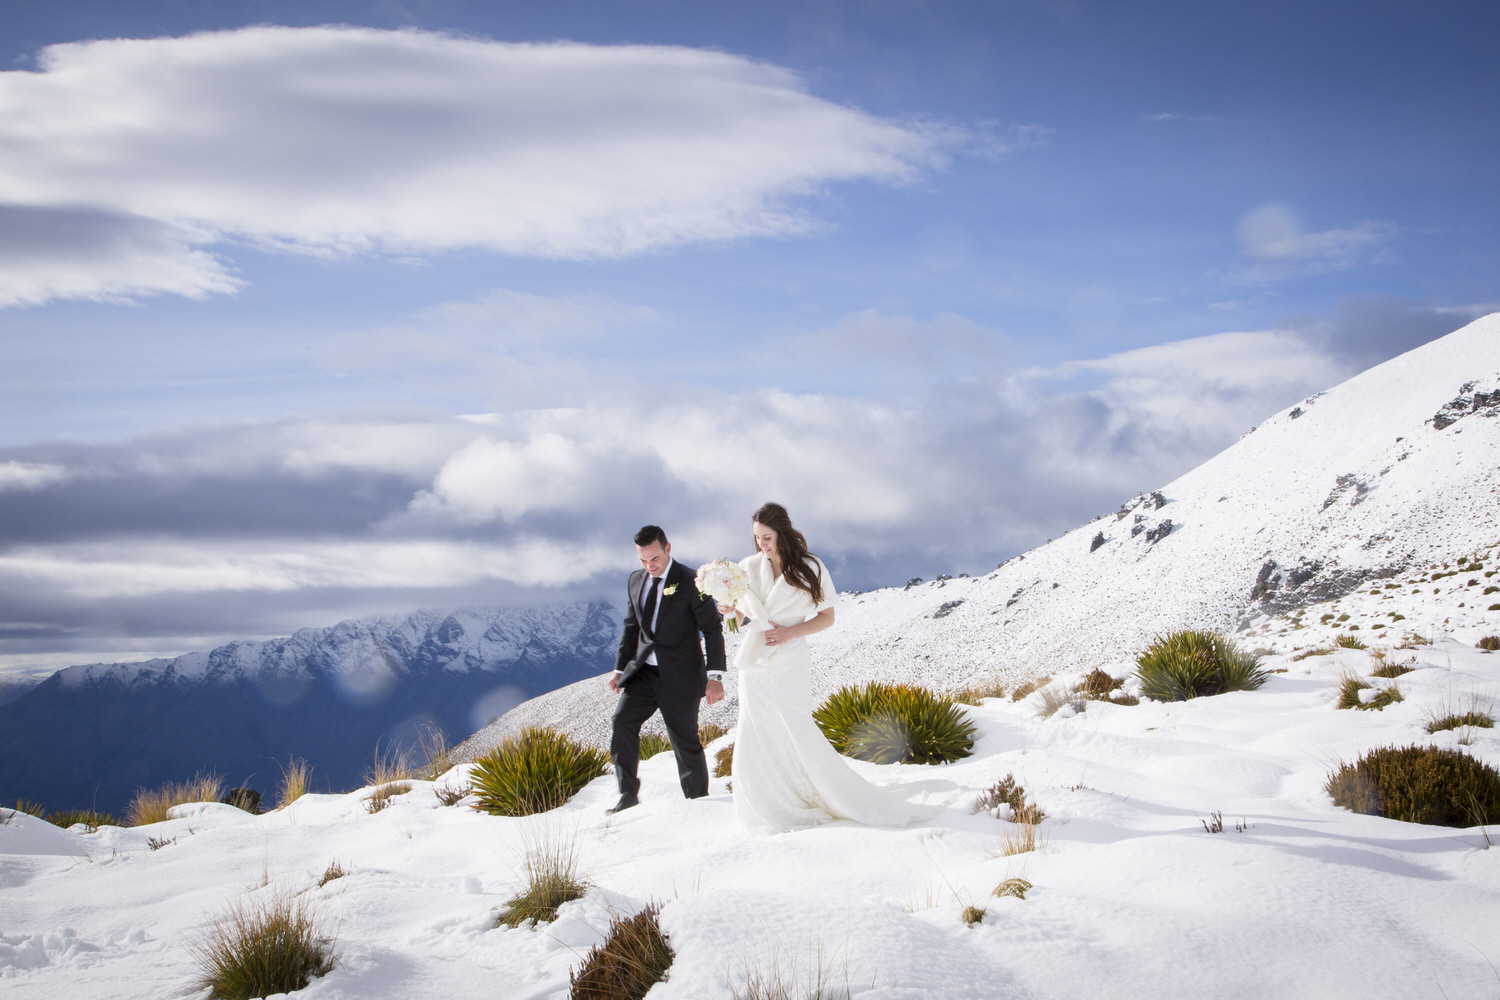 winter-wedding-snow.jpg